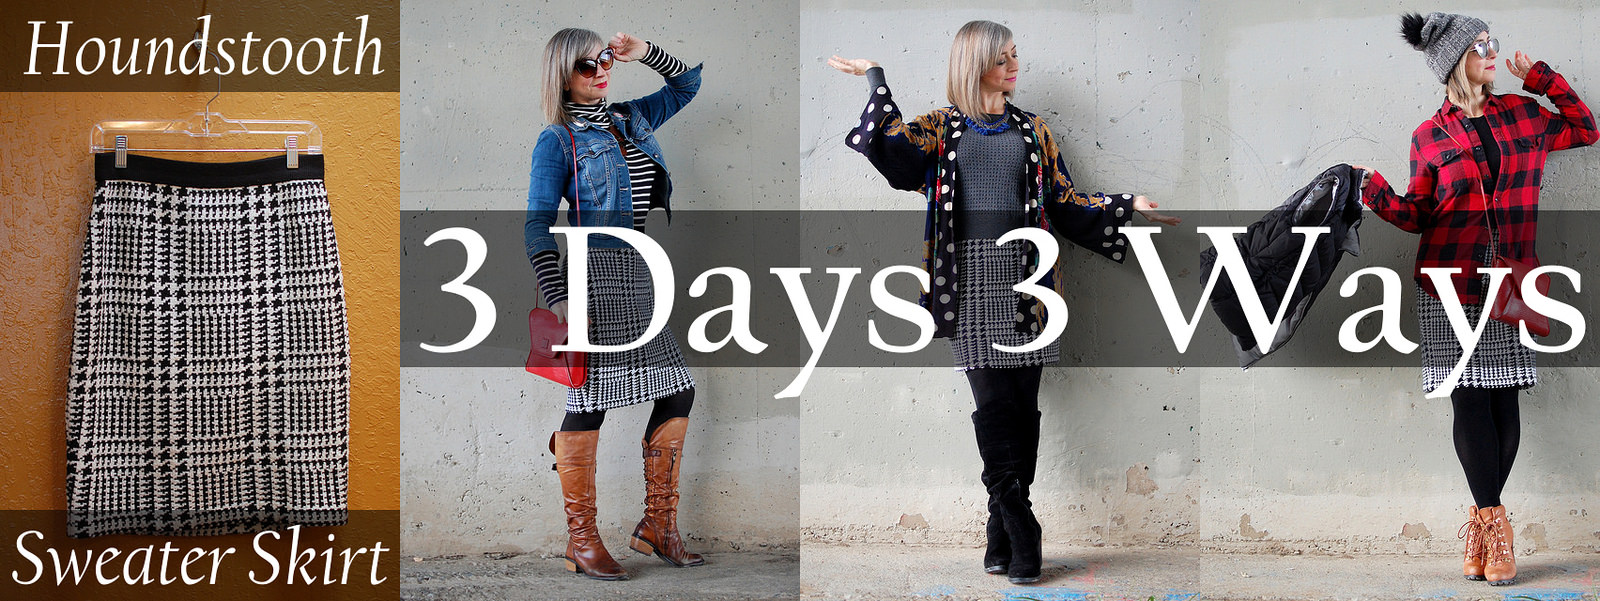 remix 3 days 3 ways daily outfit blog ootd whatiwore2day houndstooth sweater knit skirt